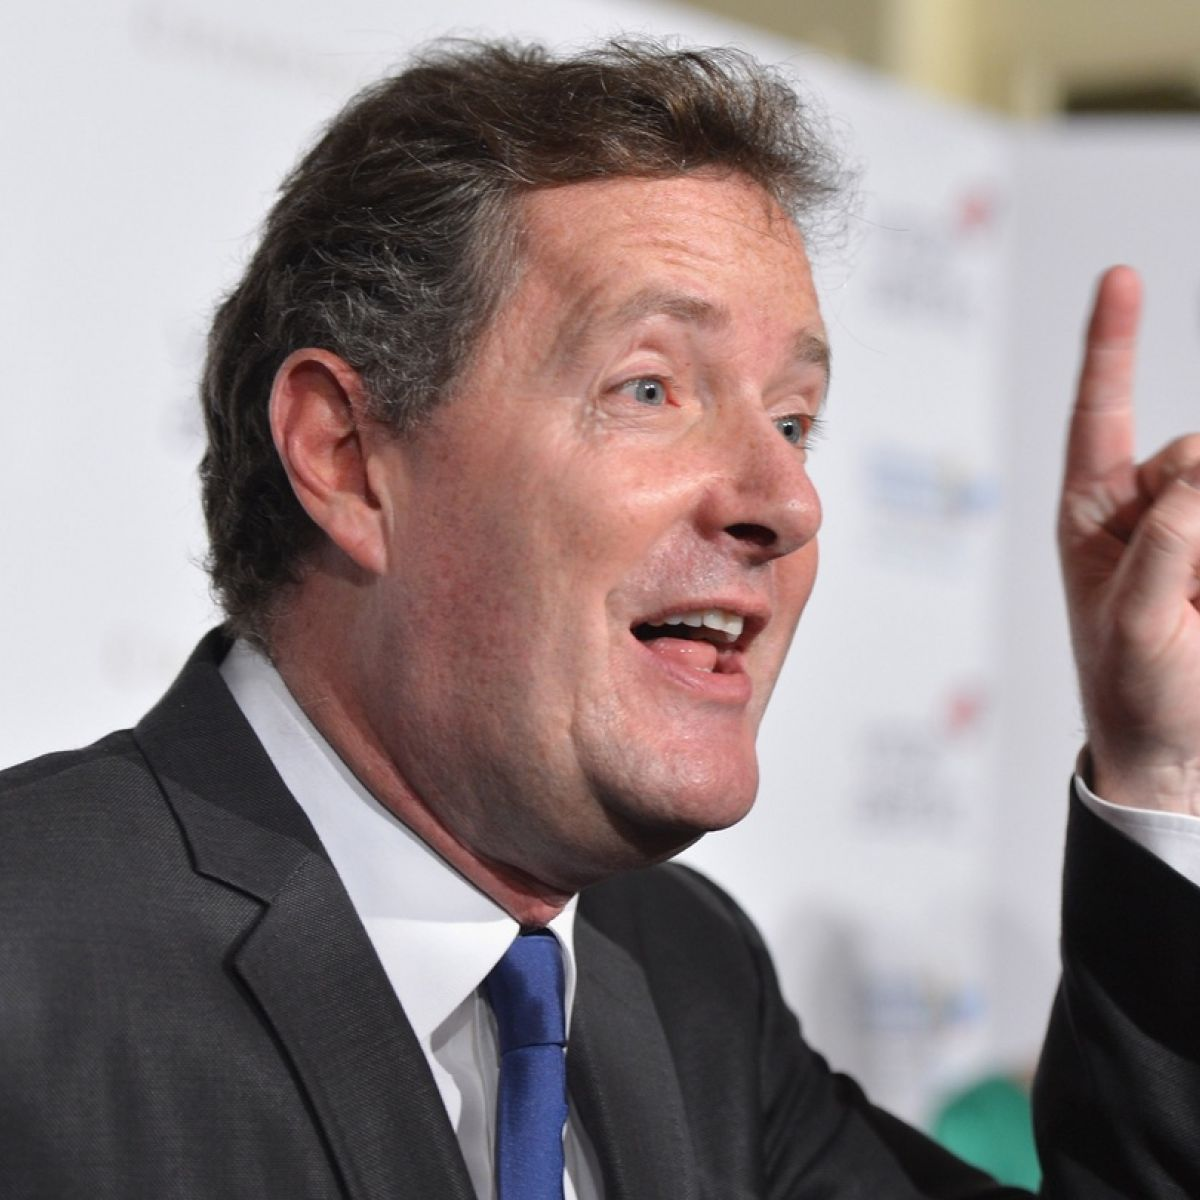 Gillette ad: If you can annoy Piers Morgan you are guaranteed free